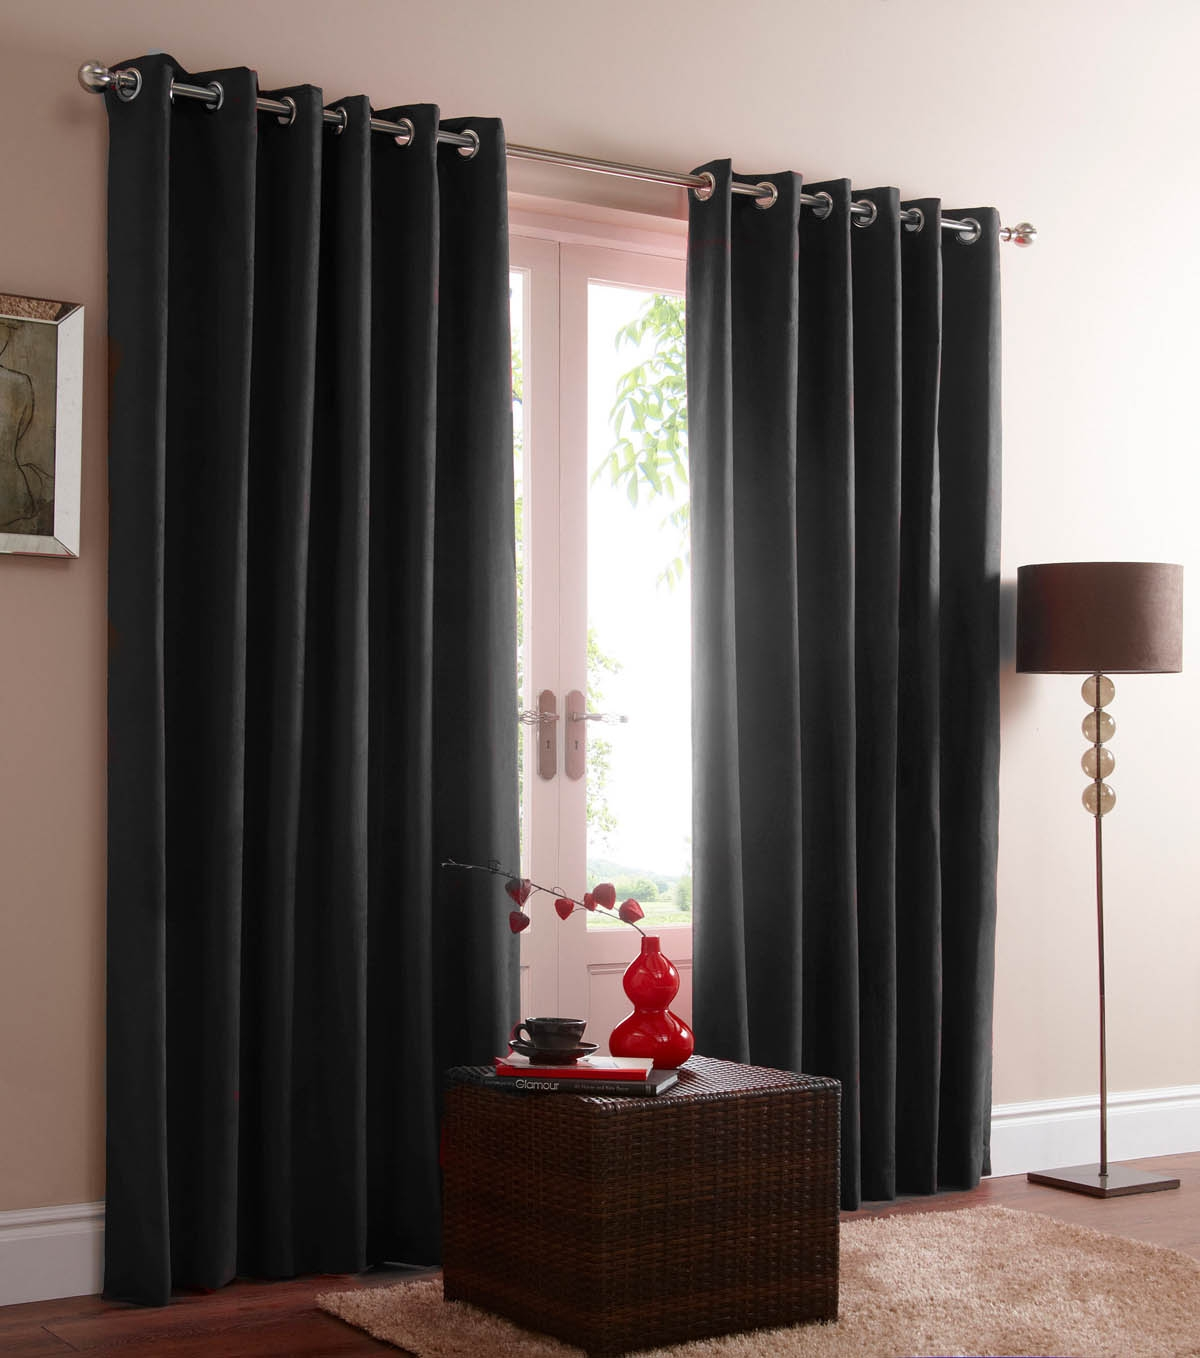 Grey Blackout Curtains Functions And Settings Design Ideas And Decor With Plain White Blackout Curtains (View 13 of 15)